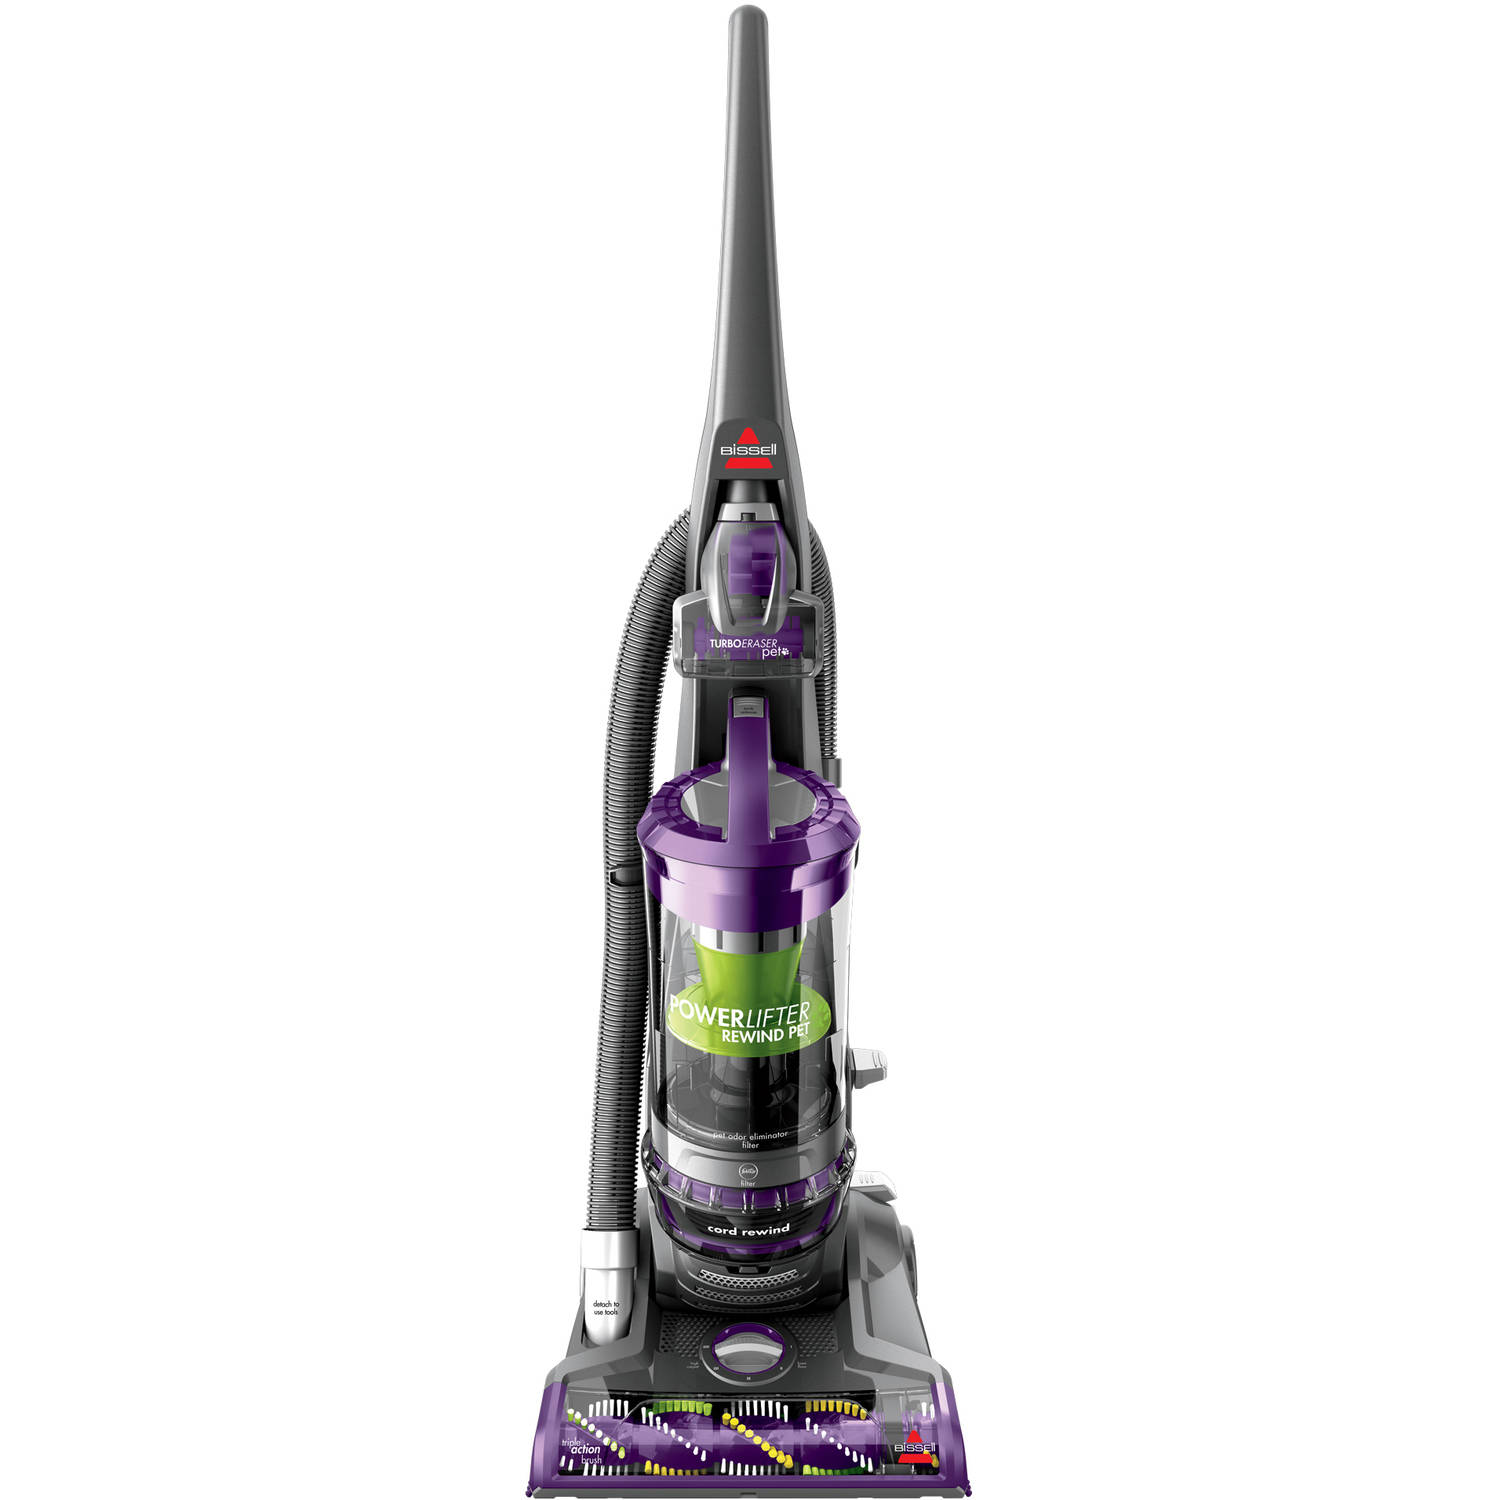 Bissell PowerLifter Pet Rewind Bagless Upright Vacuum Cleaner (Automatic Cord Rewind), 1792